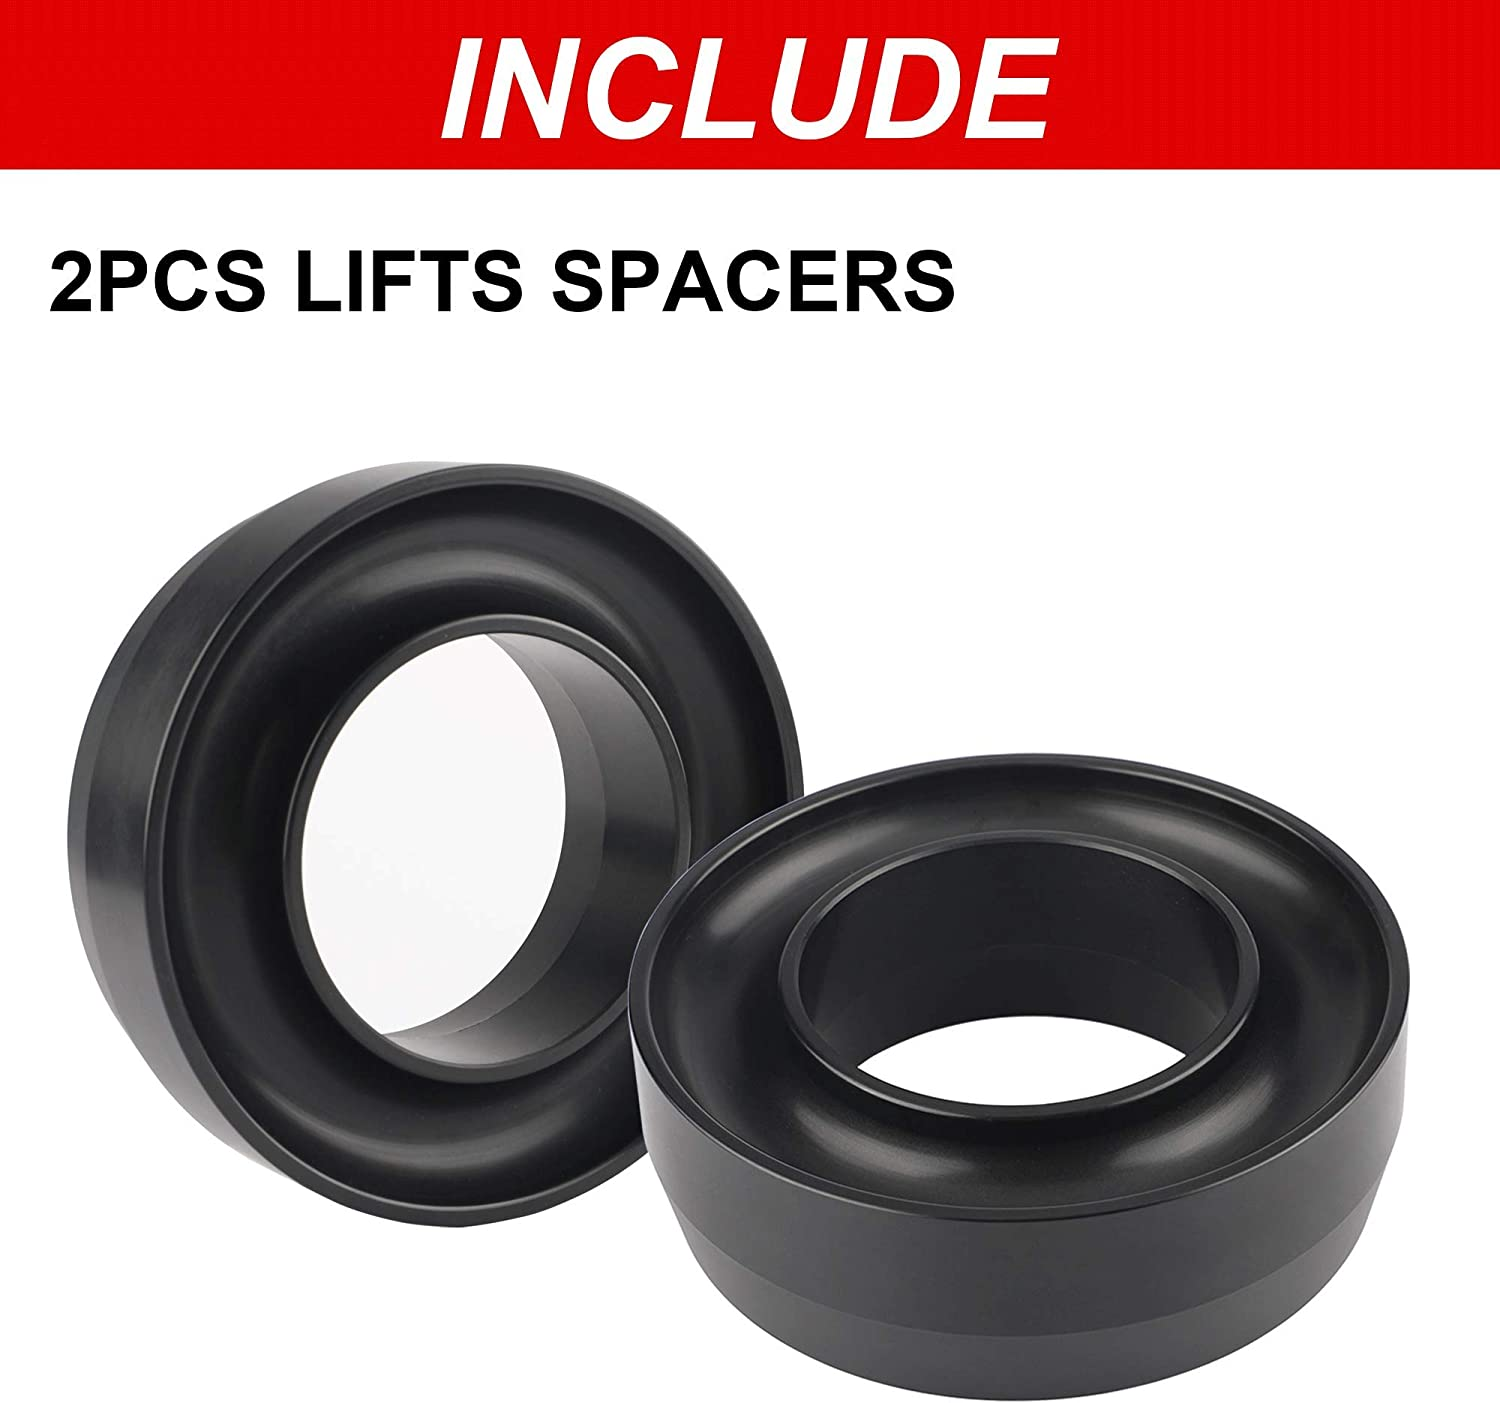 Leveling Lift Kit Compatible with 1994-2018 Ram 1500//2500//3500 2WD Forged Front Strut Spacers Raise the Front of your Car by 3 3 Front Leveling Lift Kit Compatible with Ram 1500 2500 3500 2WD